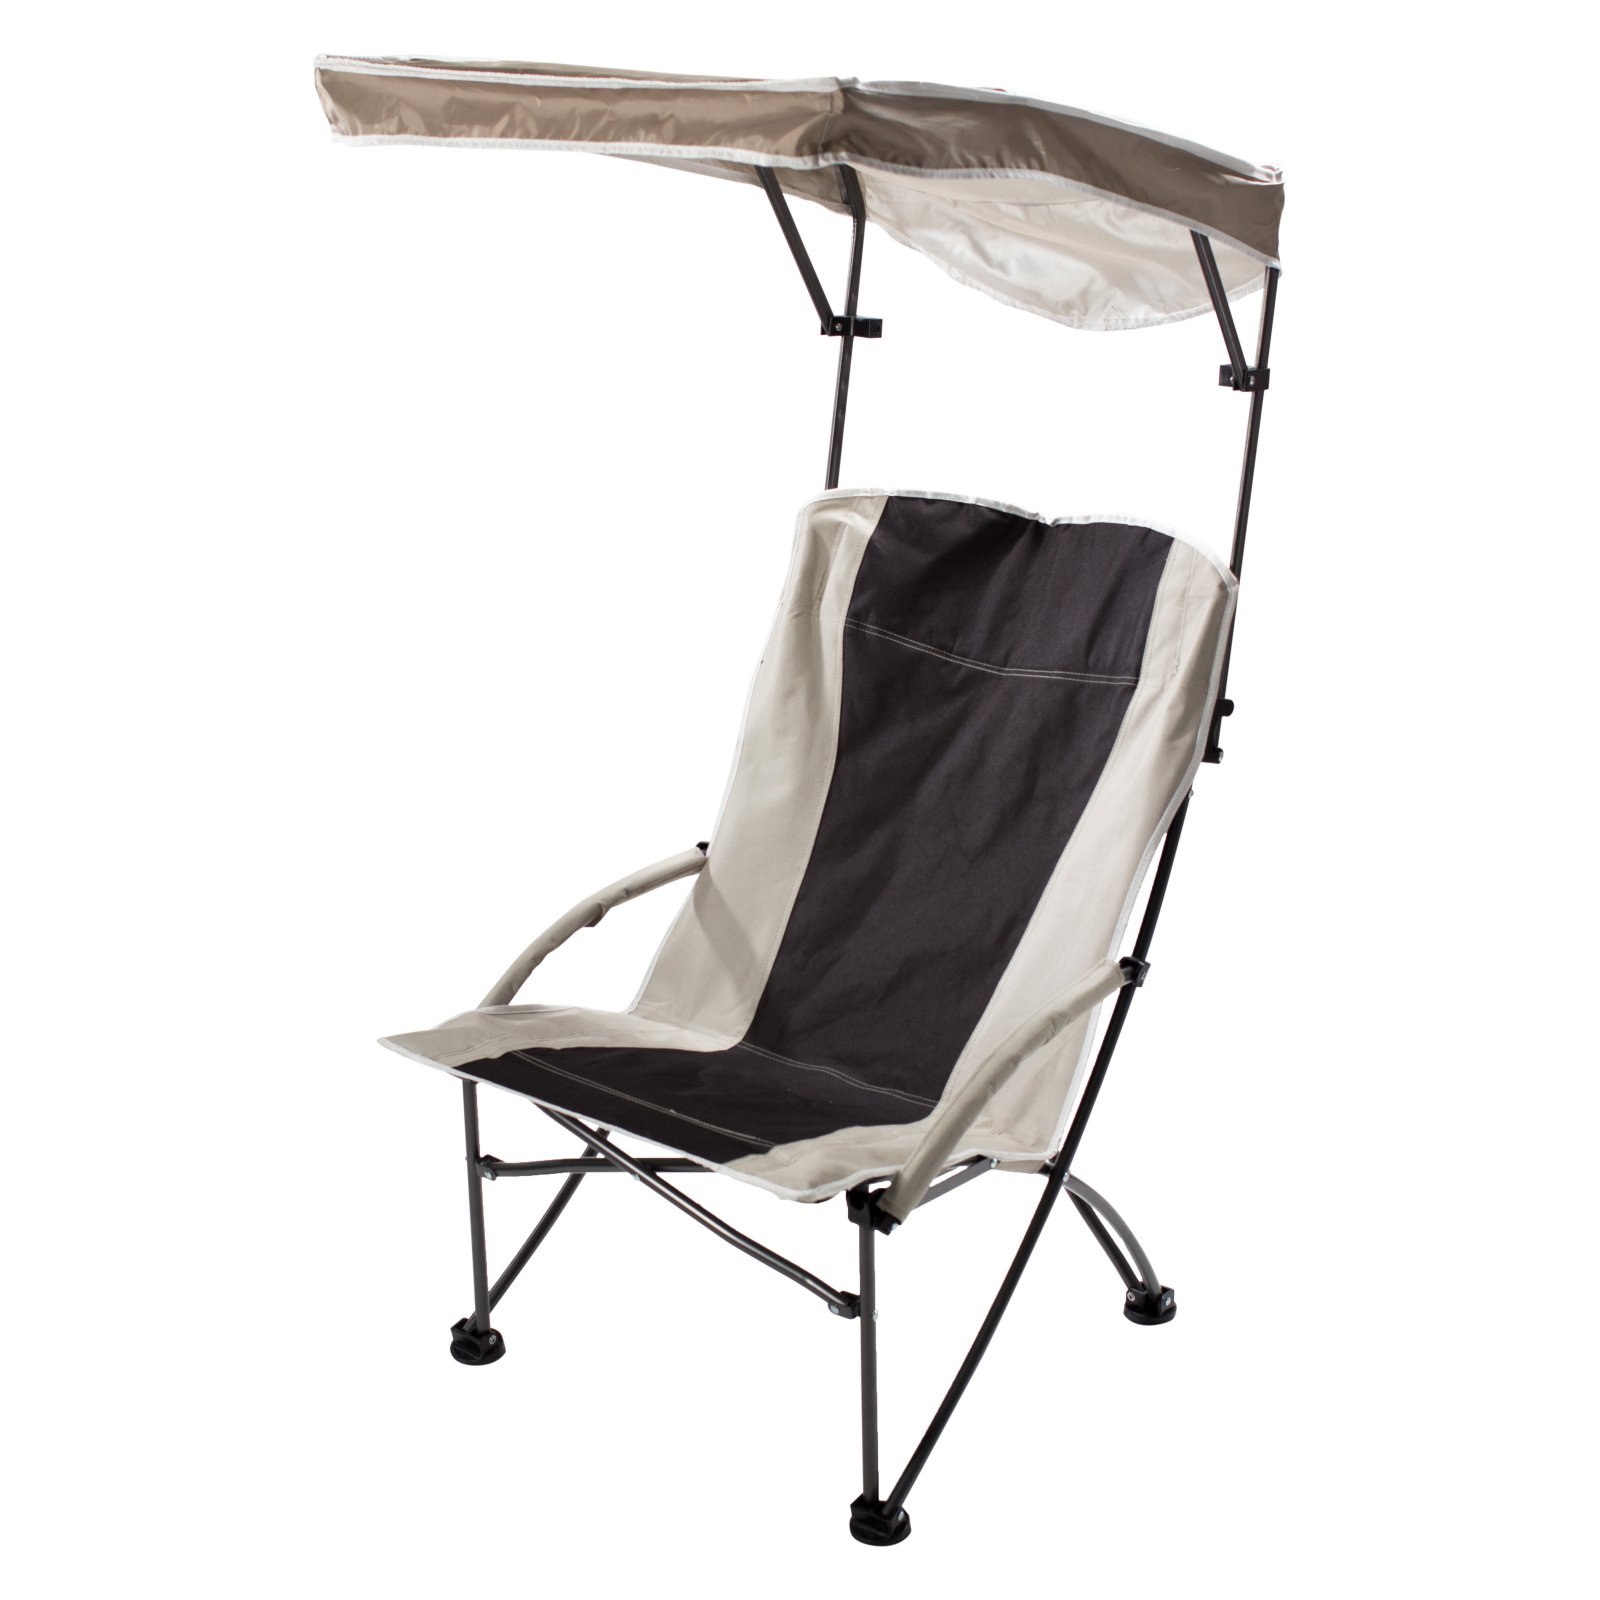 Click here to buy Quik Shade Pro Comfort Folding High Camp Chair with Canopy by Overstock.